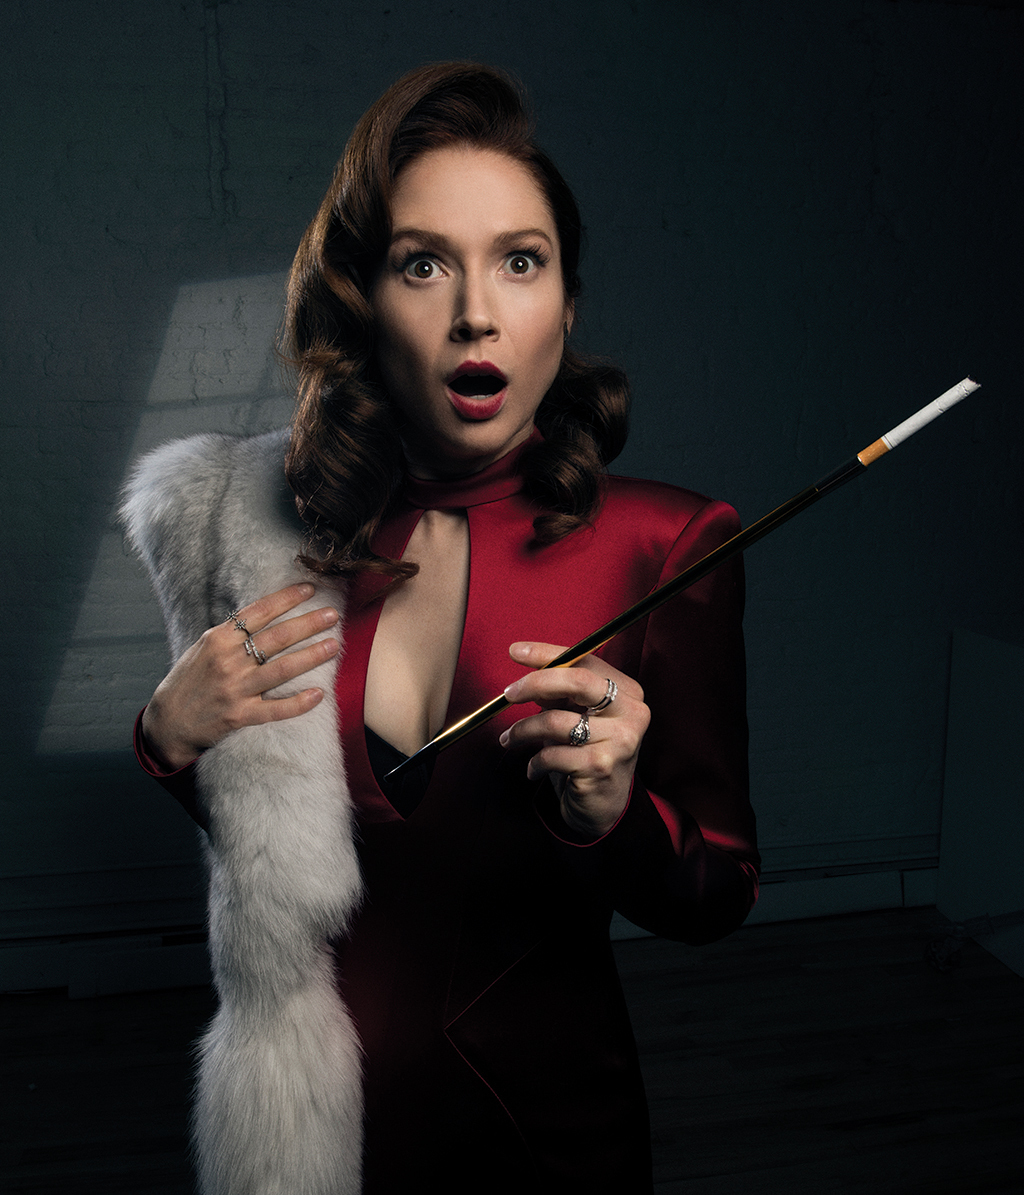 TheFappening Ellie Kemper nude (72 photos), Tits, Paparazzi, Boobs, braless 2019